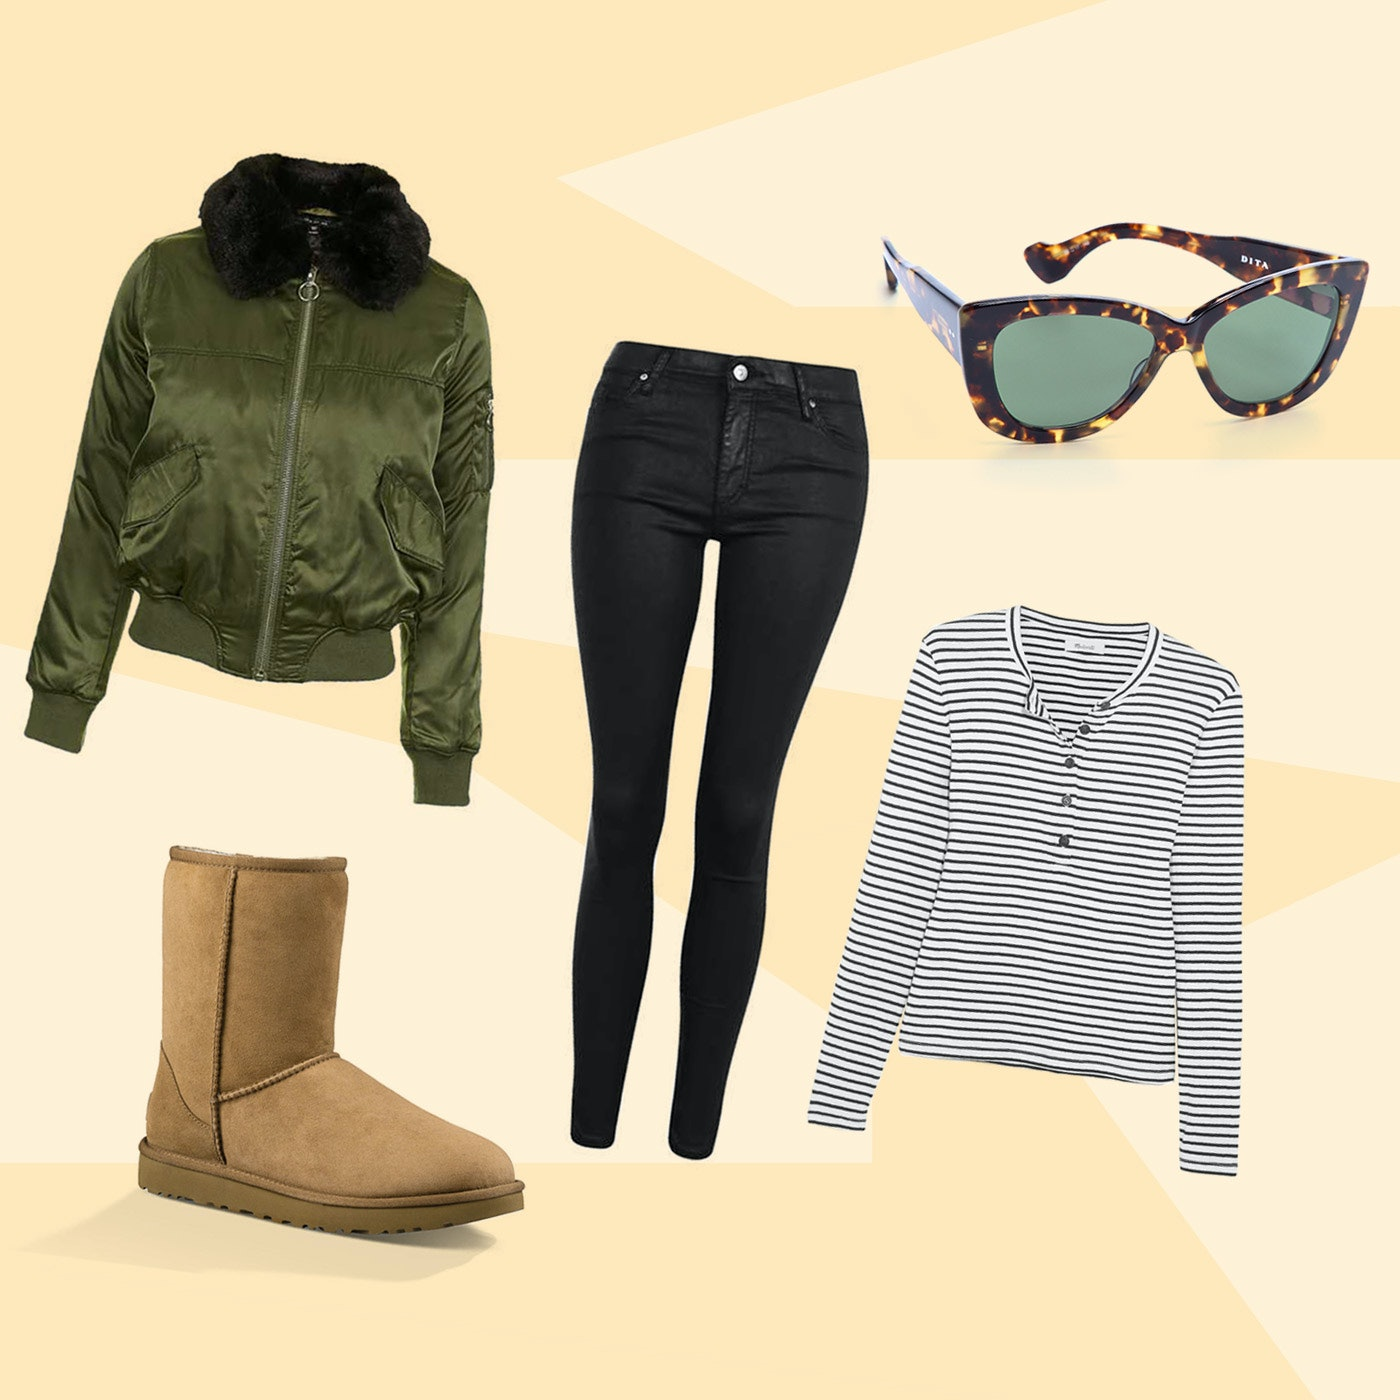 ec006a8f2b8 5 Outfits That Pair Perfectly With All Of Your Favorite Fall Activities